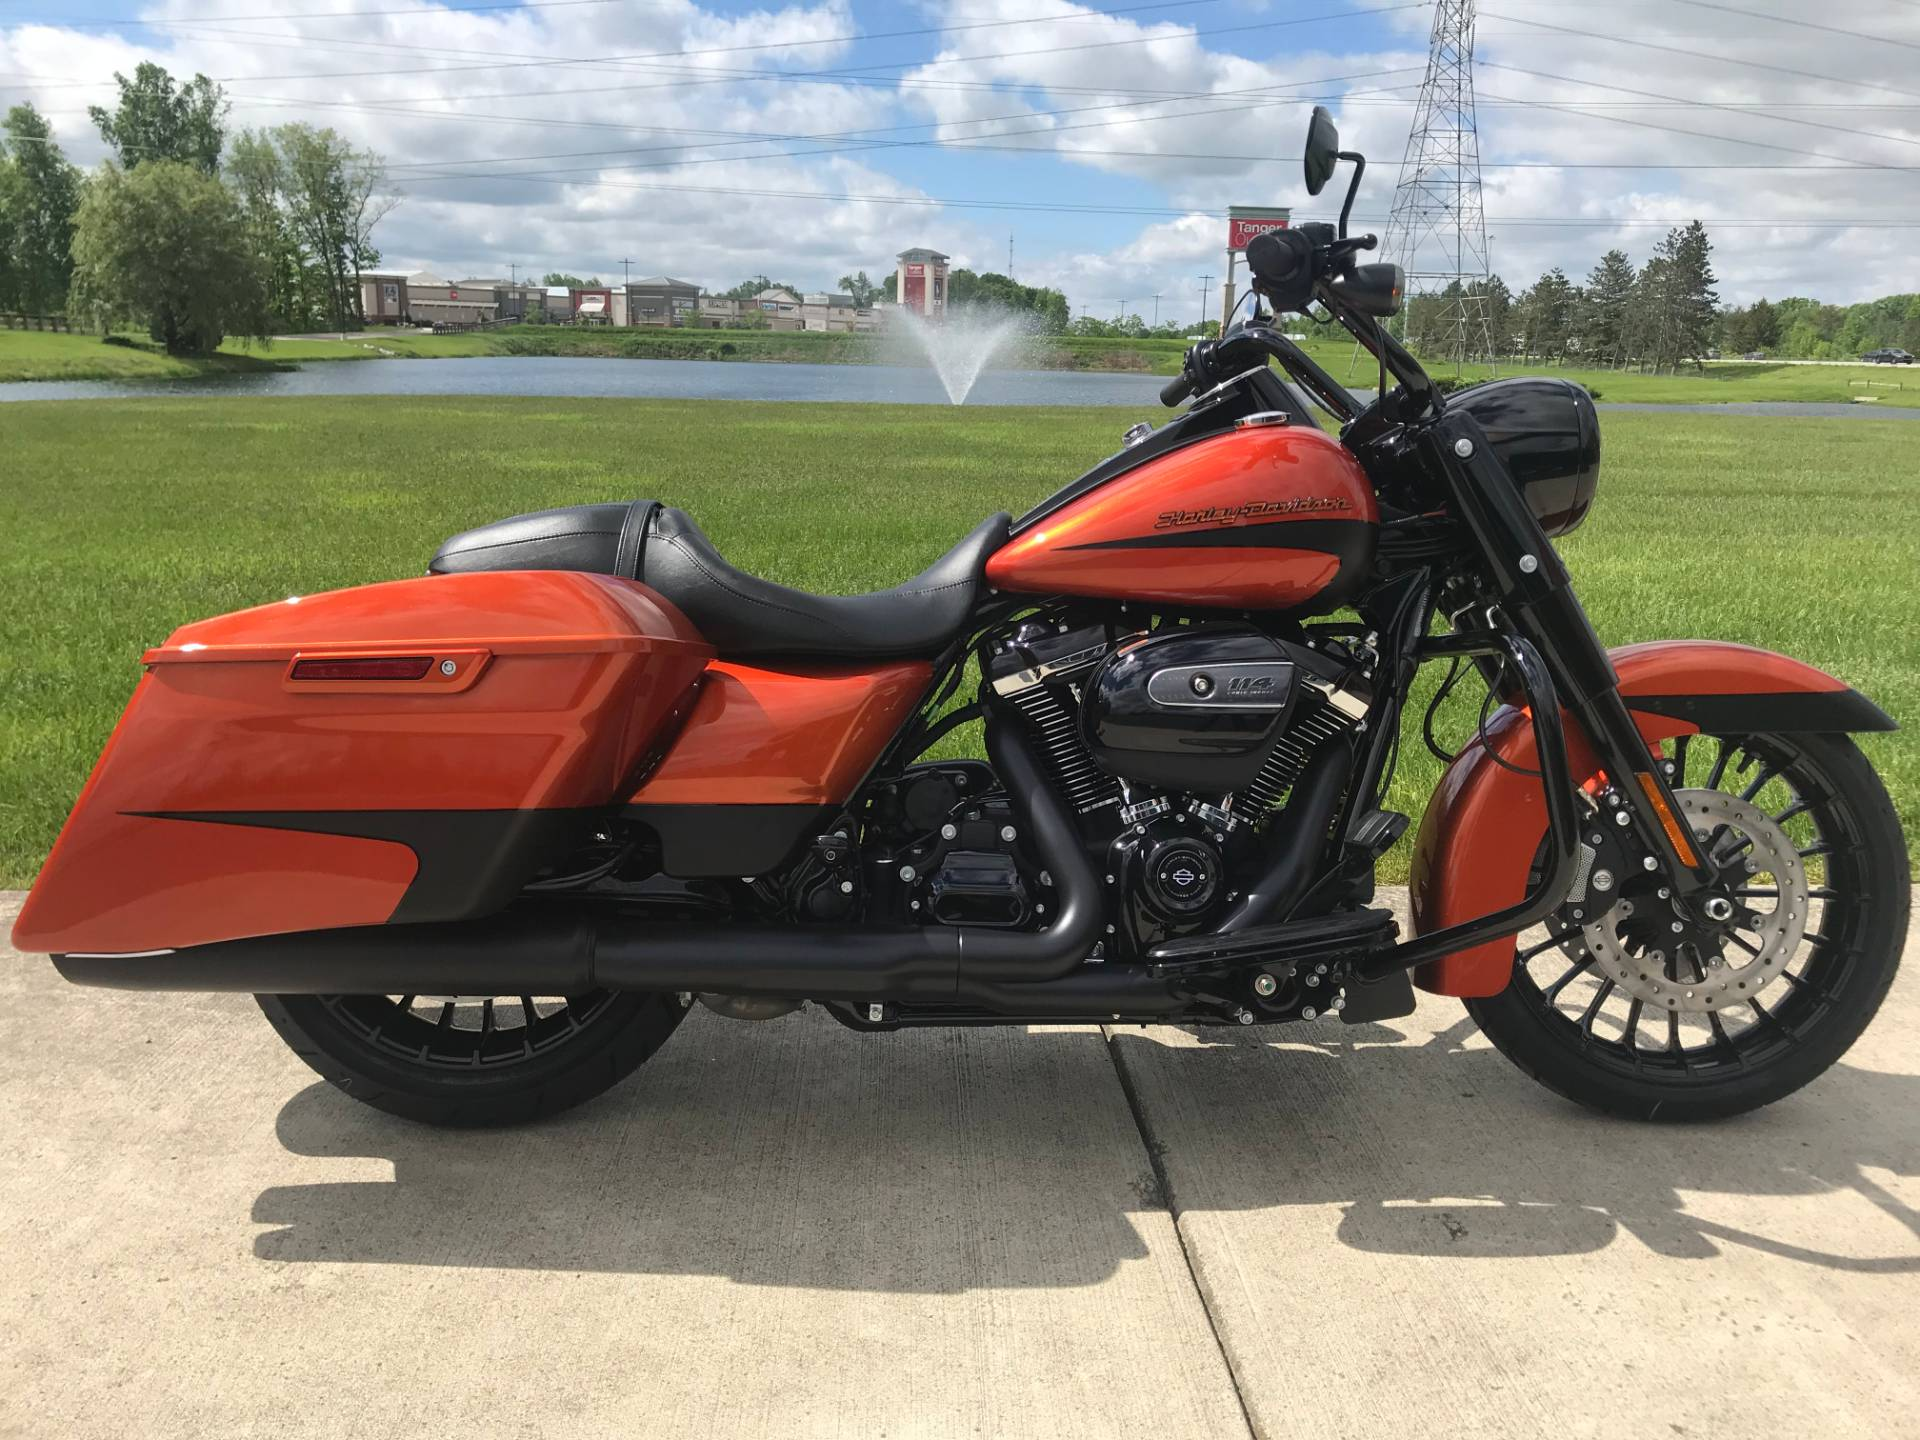 2019 Harley-Davidson ROAD KING SPECIAL in Sunbury, Ohio - Photo 1